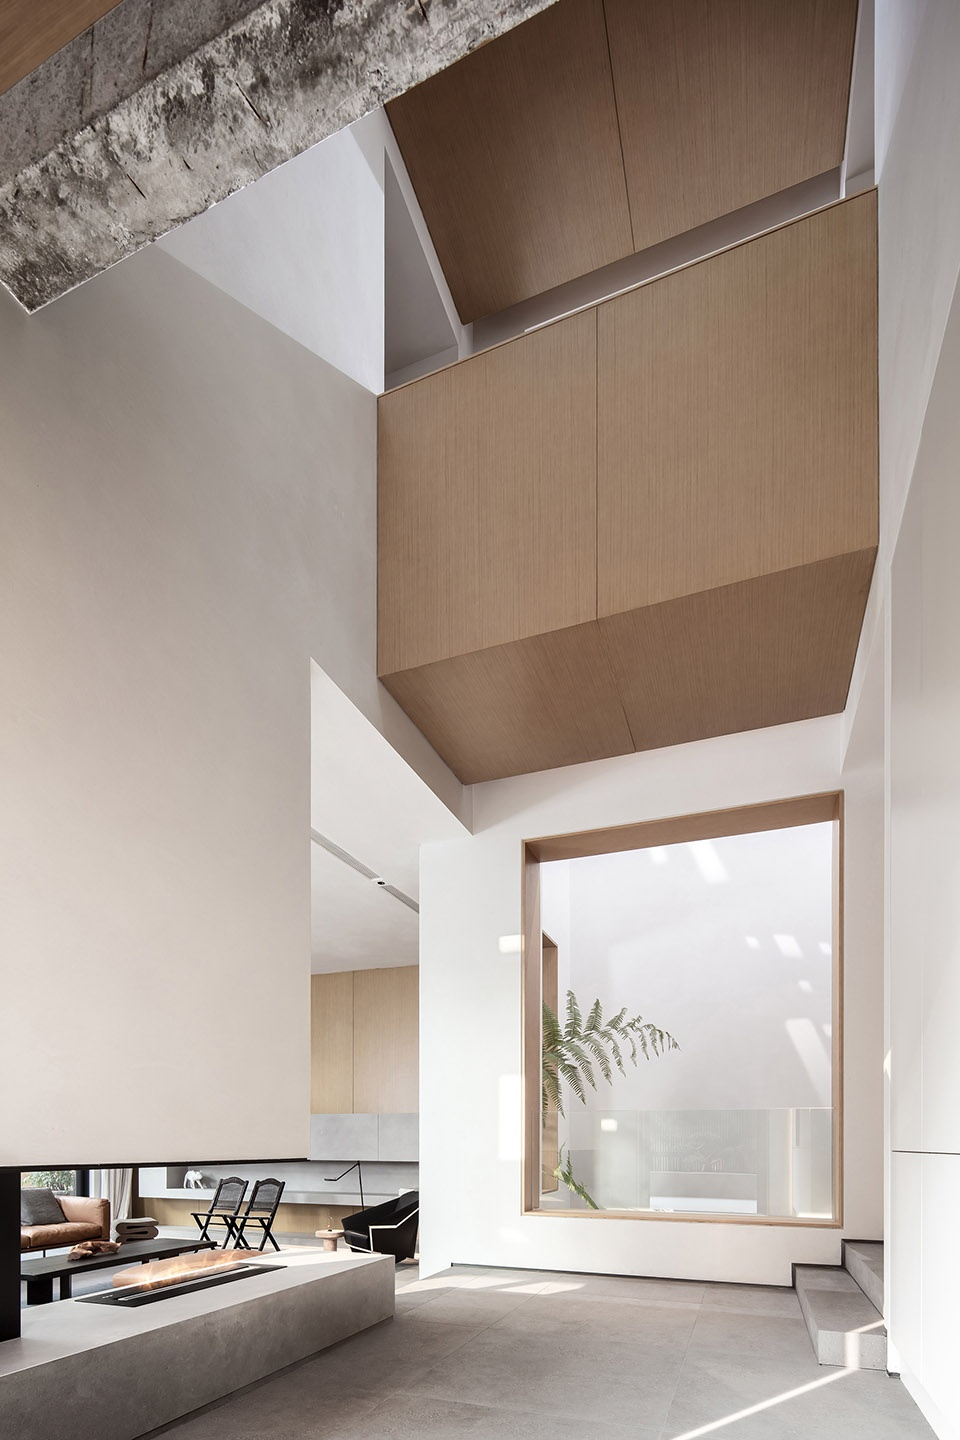 006-a-desired-home-china-by-liang-architecture-studio-960x1440.jpg